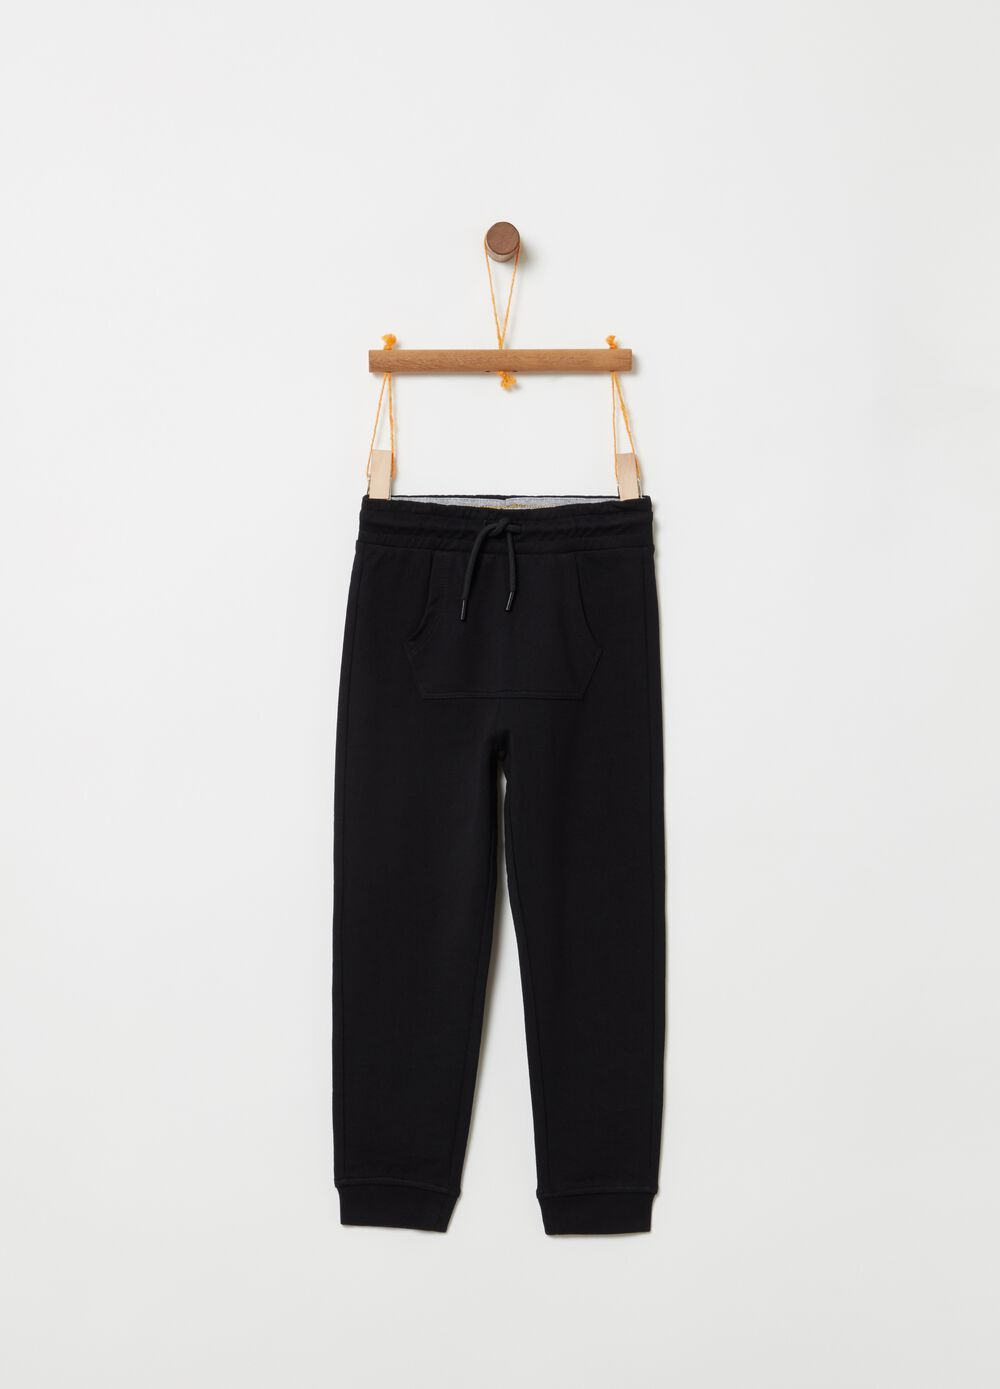 Organic cotton French terry trousers with pocket